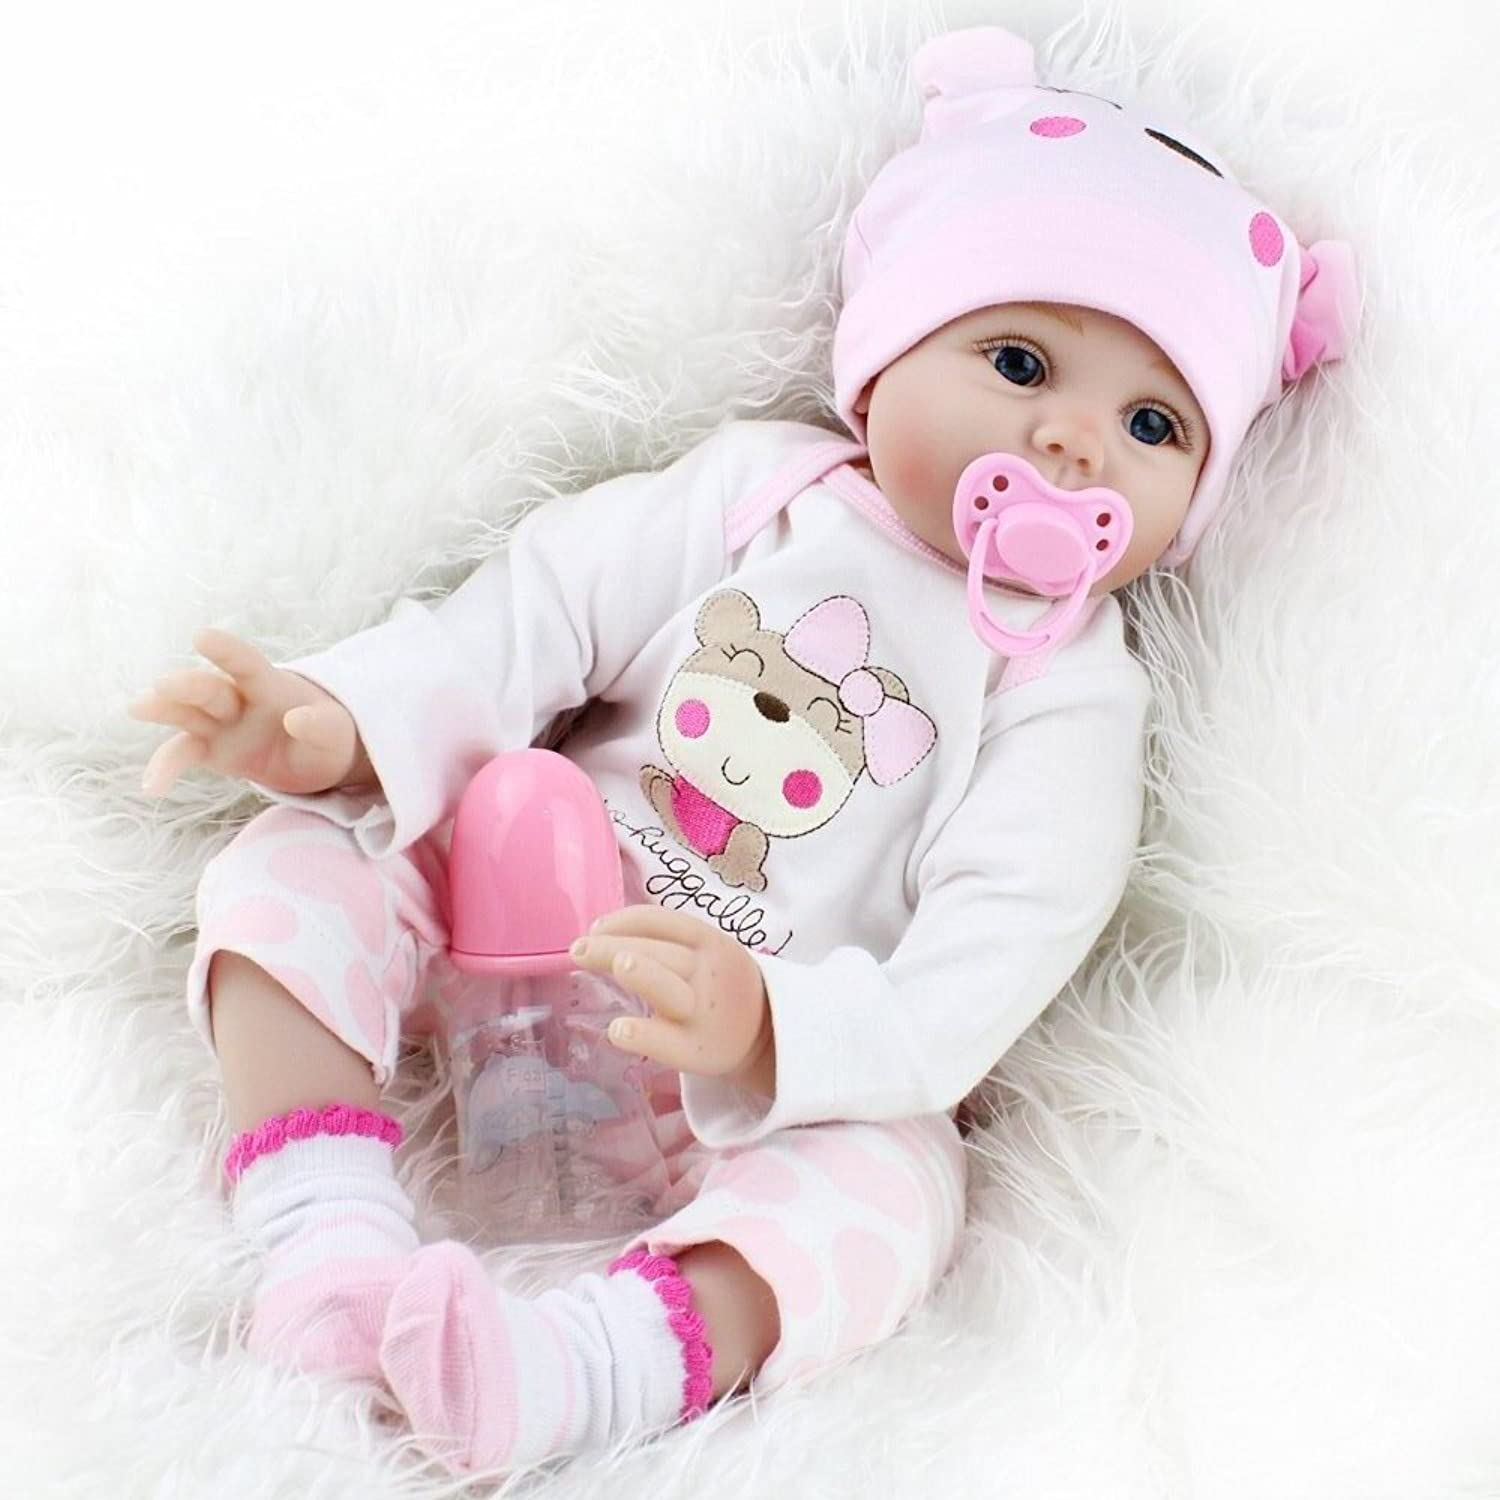 Kaydora Reborn Baby Dolls 22 Inch Adorable Cute Reborn Dolls Handmade Babies for Kids Toys